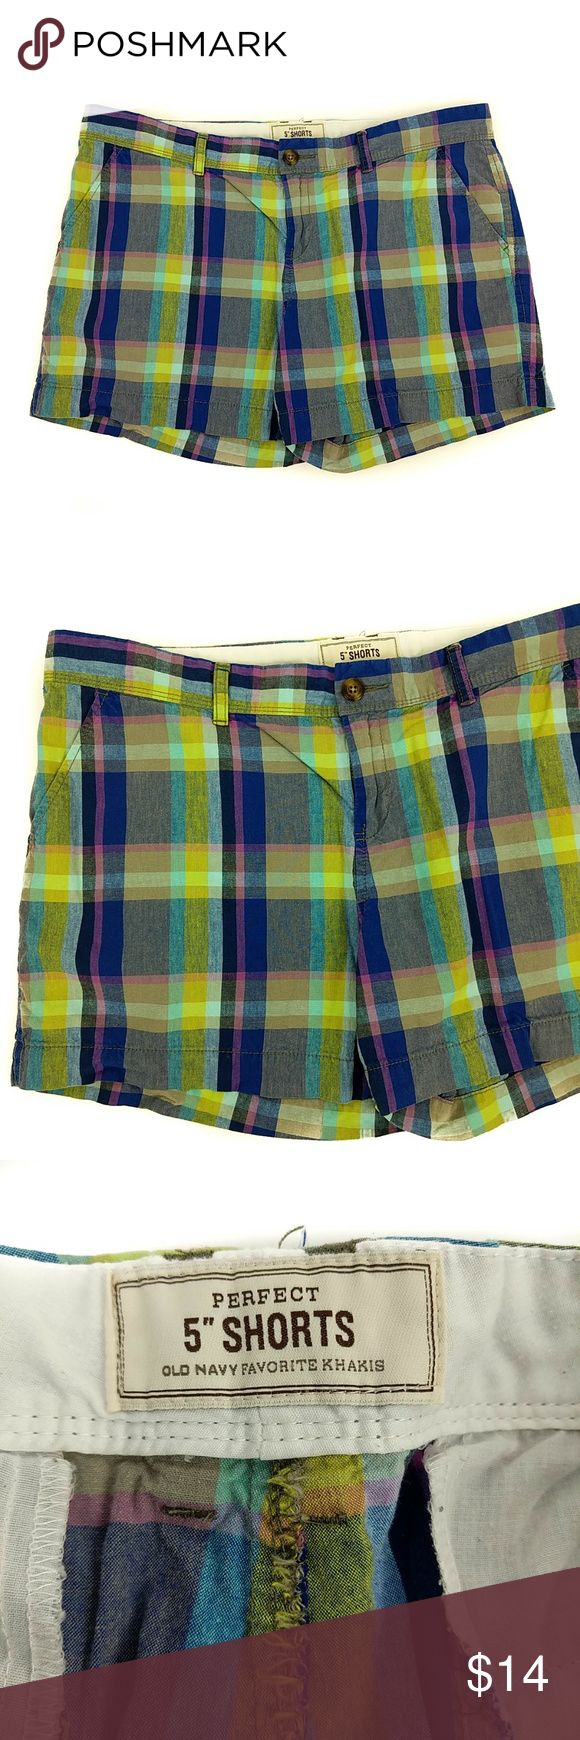 "Old Navy Perfect 5"" Shorts Plaid Women's Size: 14 Old Navy Perfect 5"" Shorts Favorite Khakis Plaid Casual Shorts  Size: 14  100% Cotton  Waist: 37"" Length: 14""  Gently used with no flaws. Please see photos for details Will ship within 1 business day Old Navy Shorts"